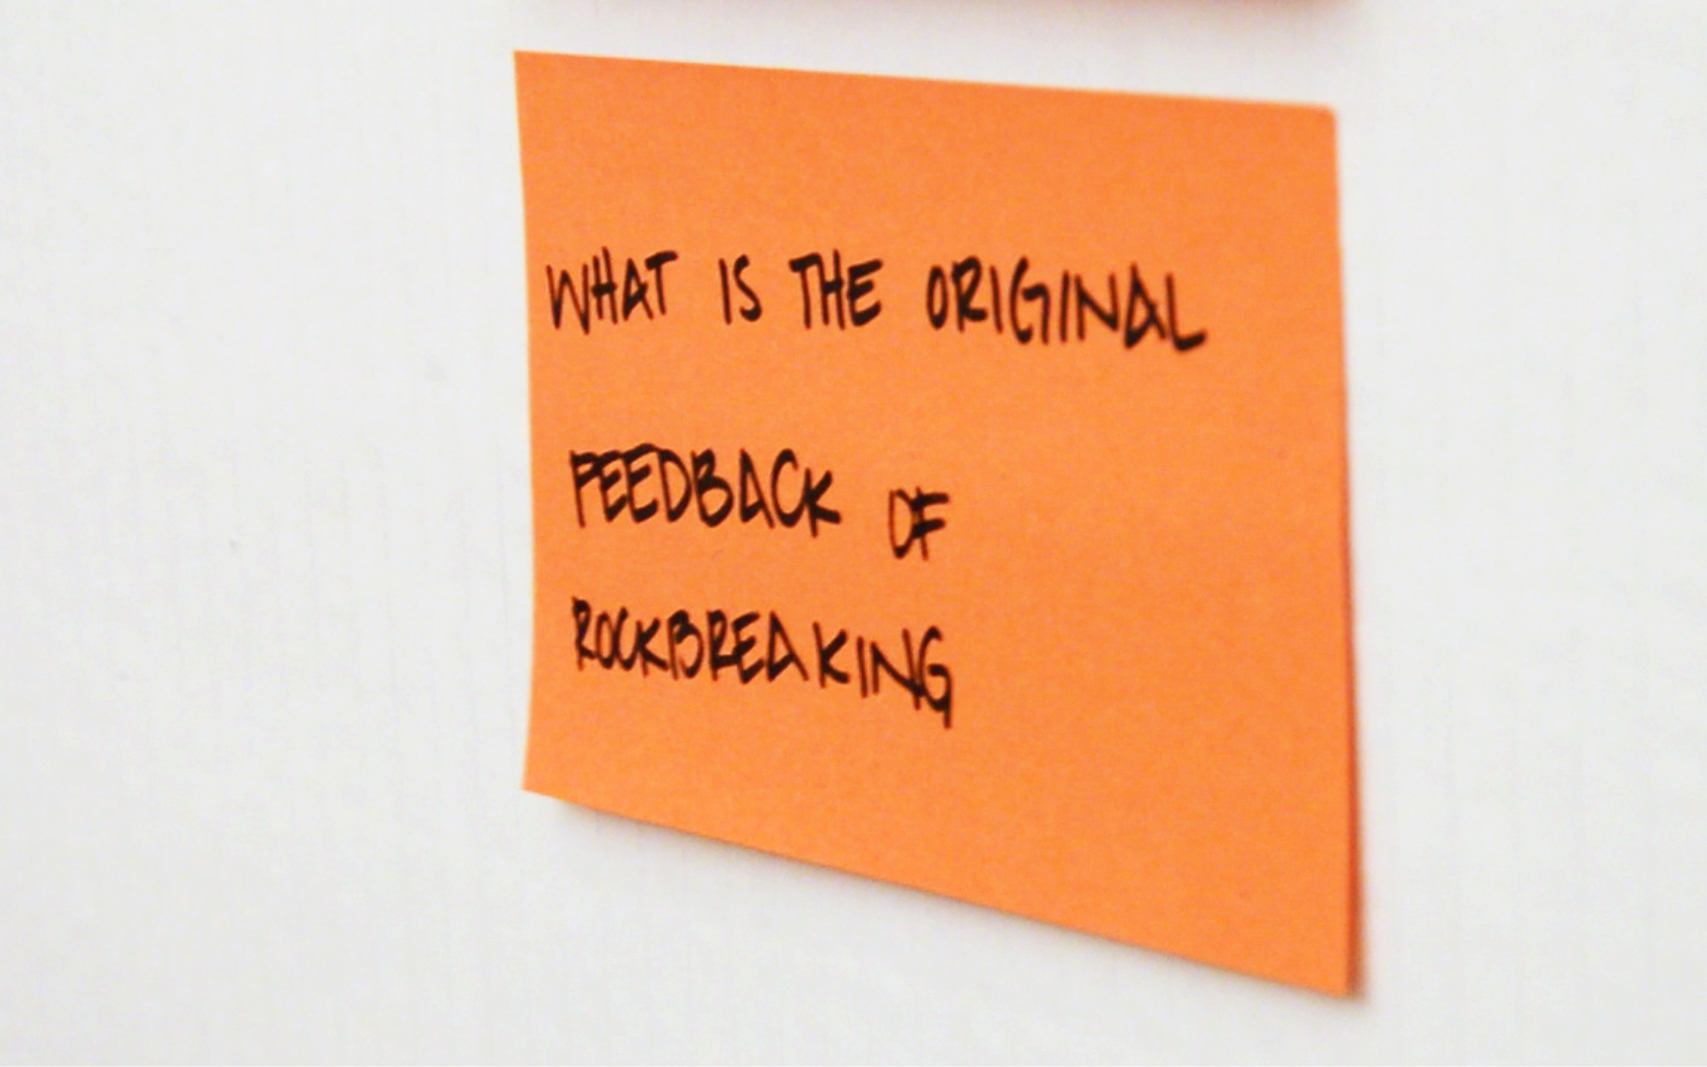 Key question from the field visits